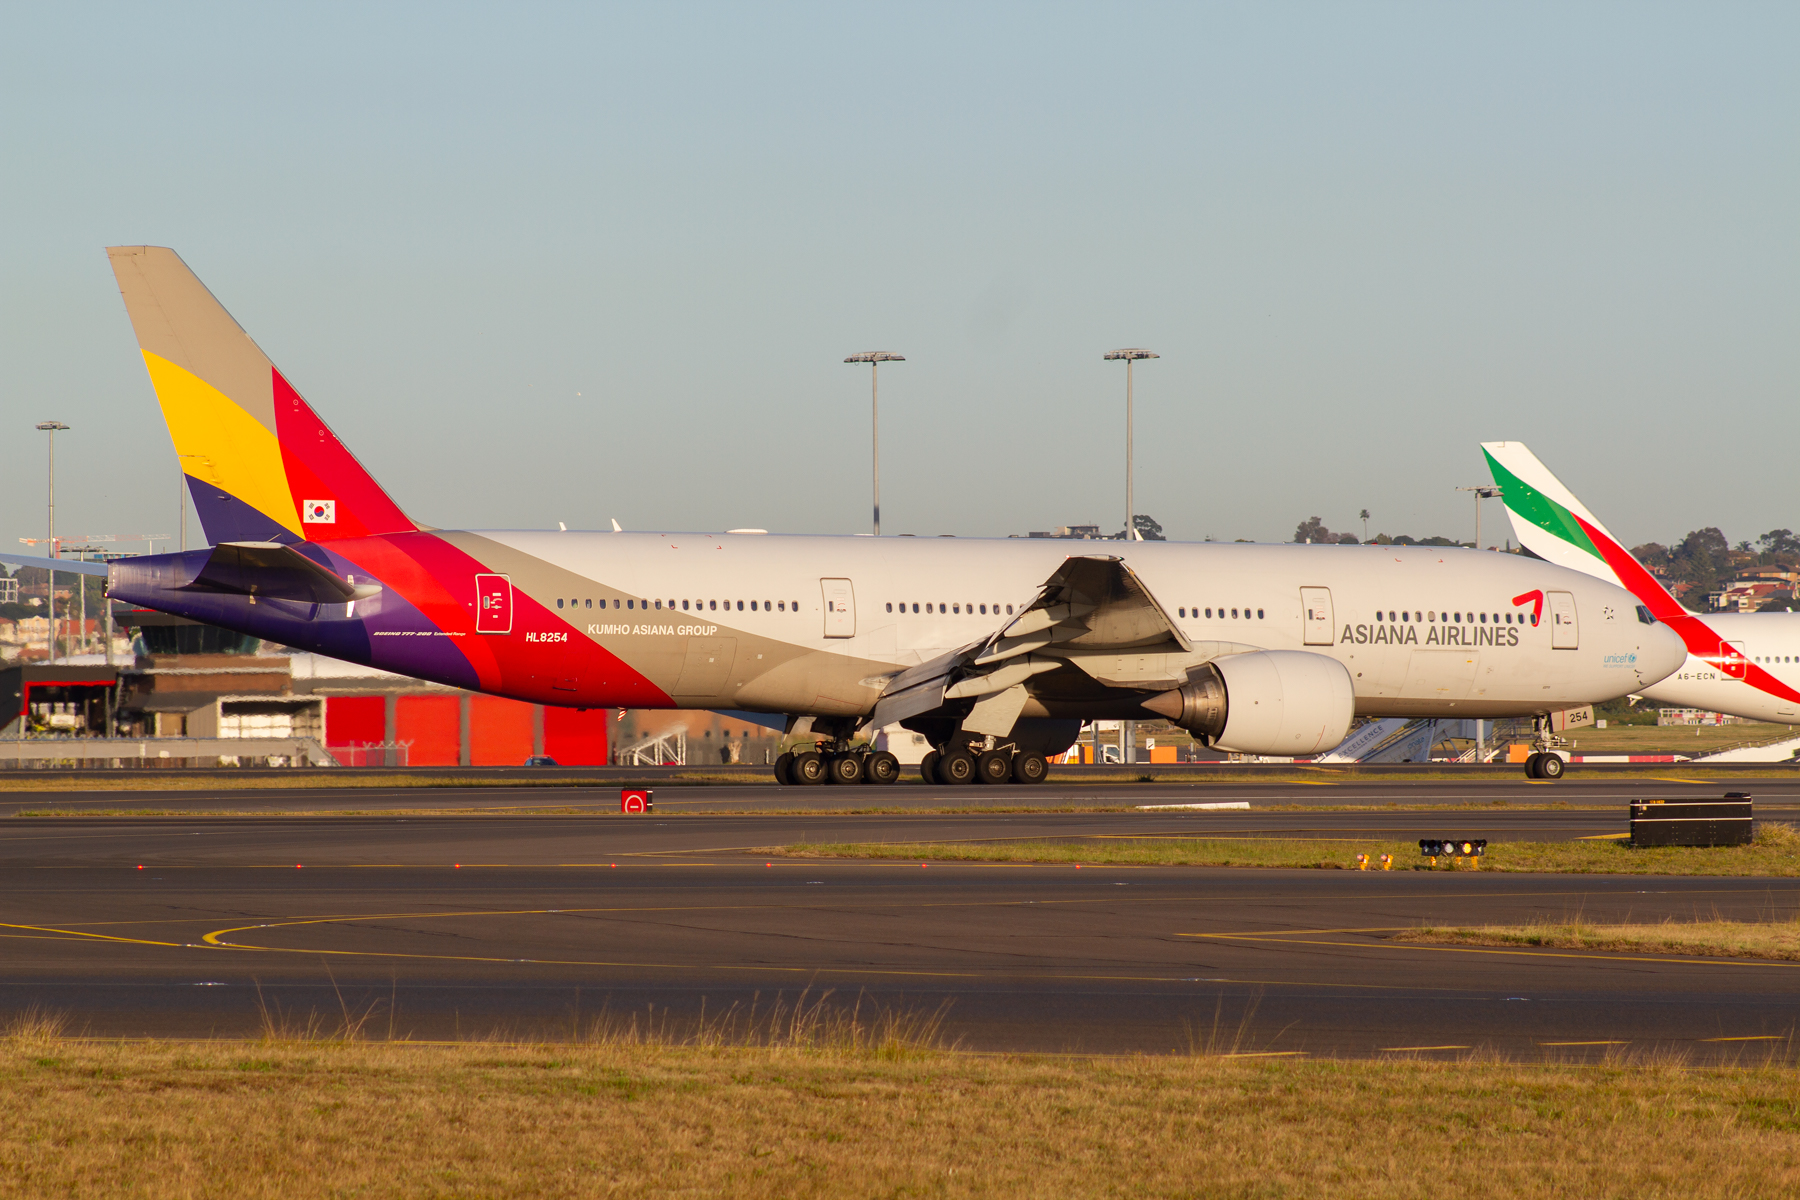 Asiana Boeing 777-200ER HL8254 at Kingsford Smith